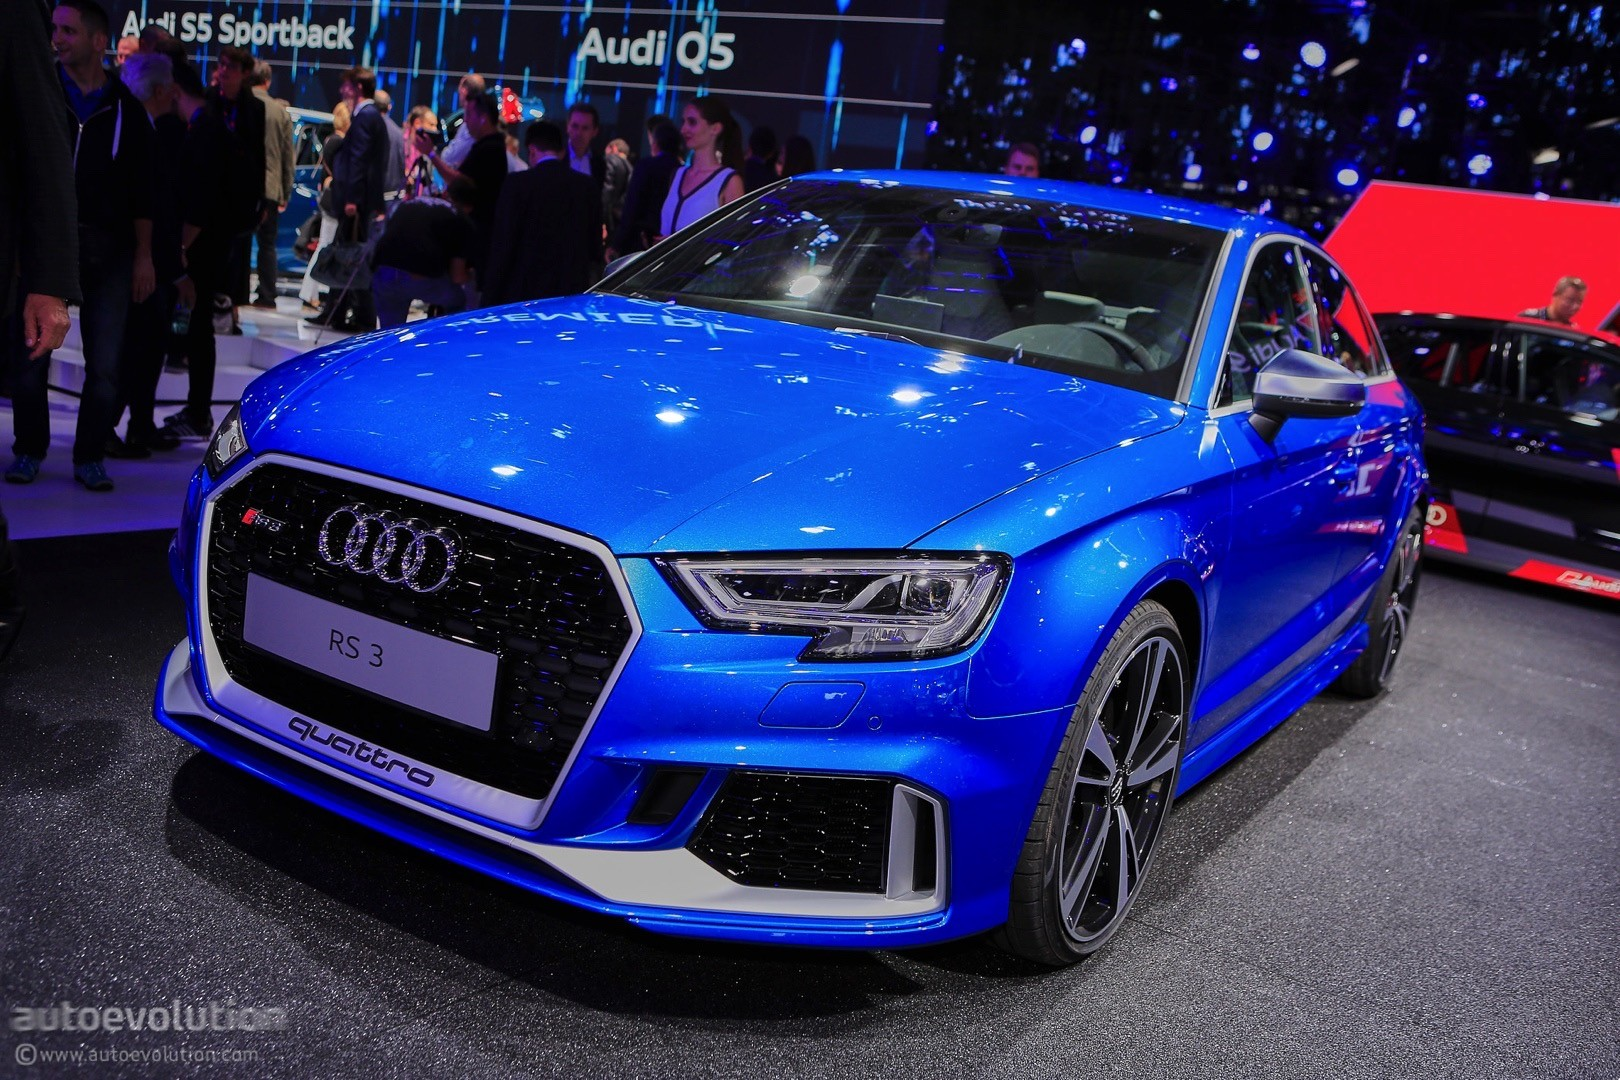 2018 audi rs3 sedan price leaked in canada should be. Black Bedroom Furniture Sets. Home Design Ideas